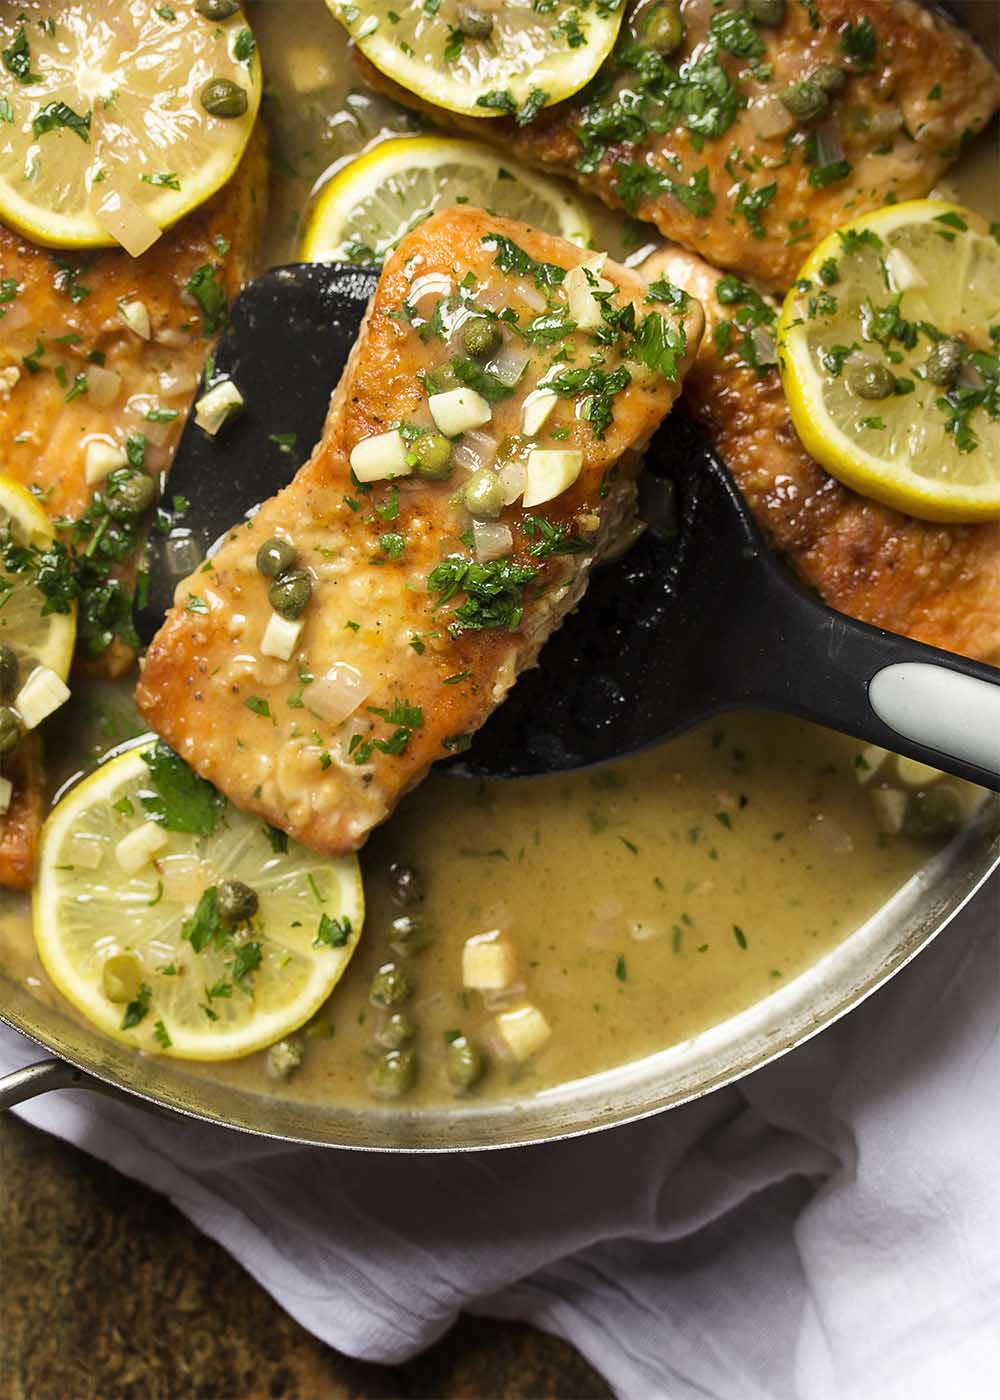 A spatula holding up a piece of salmon piccata ready to serve it onto a plate.